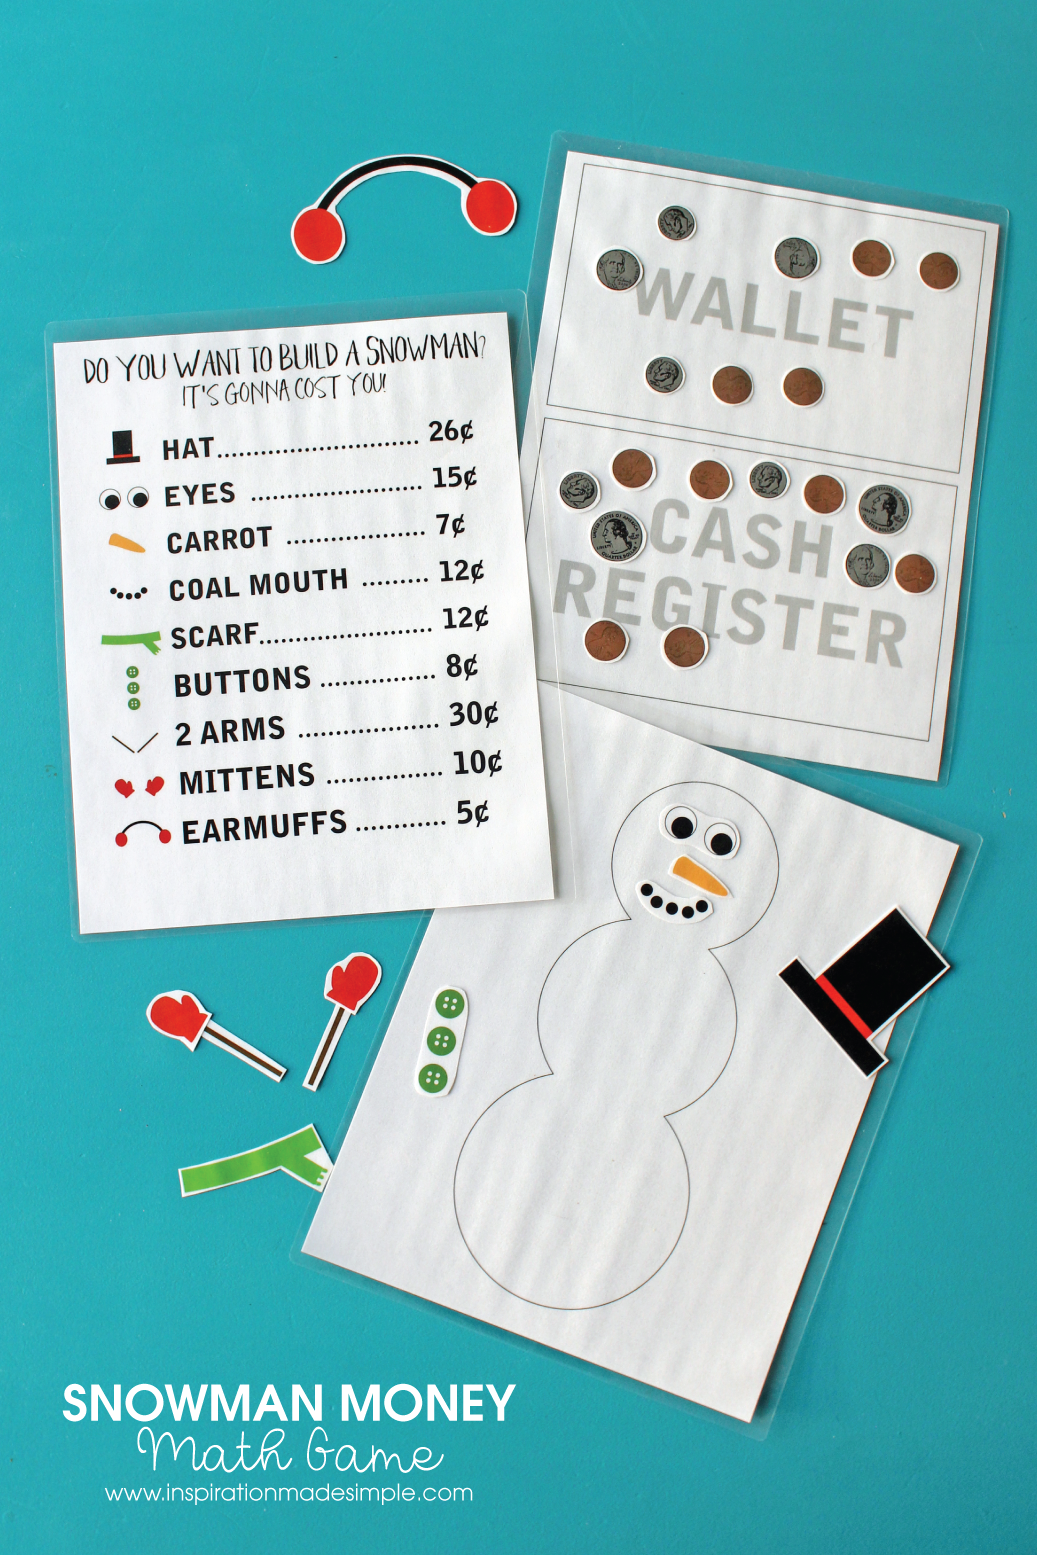 Snowman Money Math Game - great learning game for children learning US Currency